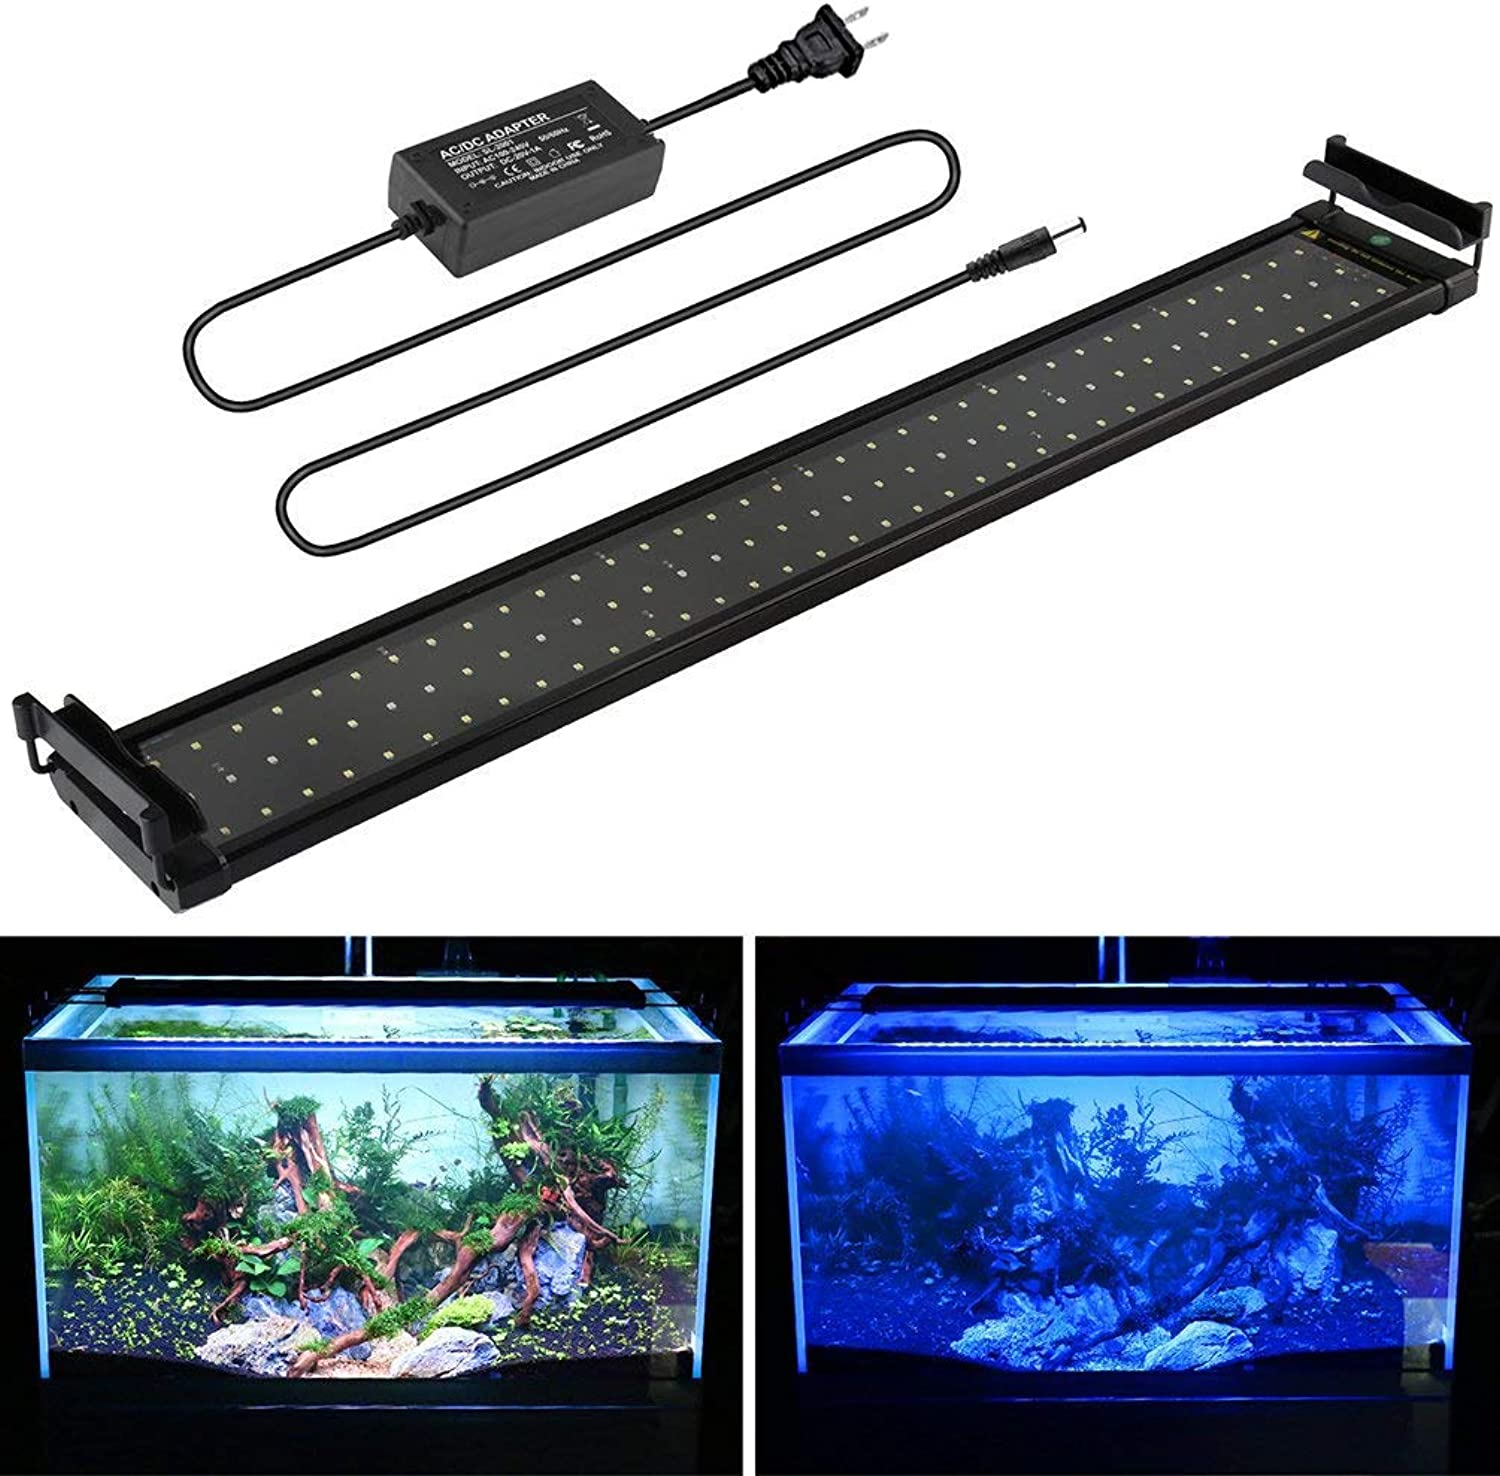 Lightess 72 LED Aquarium Light 14W Super Brightness Fish Tank Light with Extendable Bracket 2 Modes with bluee and White Bulb, 20 inches to 27 inches, 6500K